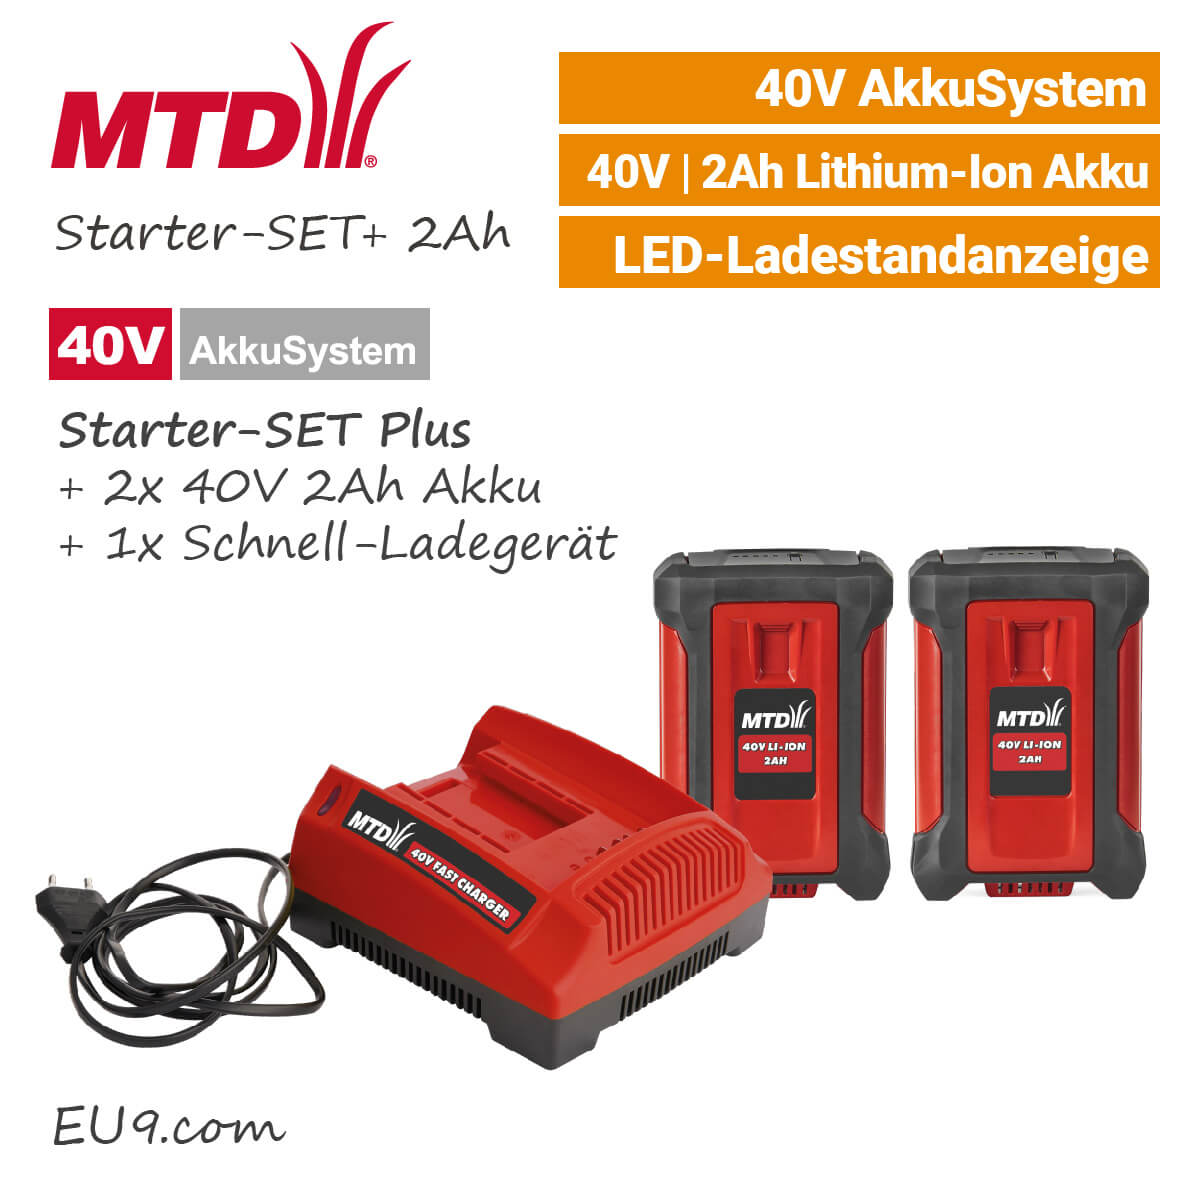 mtd 40v starter set plus 2ah 2xakku ladeger t g nstig kaufen. Black Bedroom Furniture Sets. Home Design Ideas